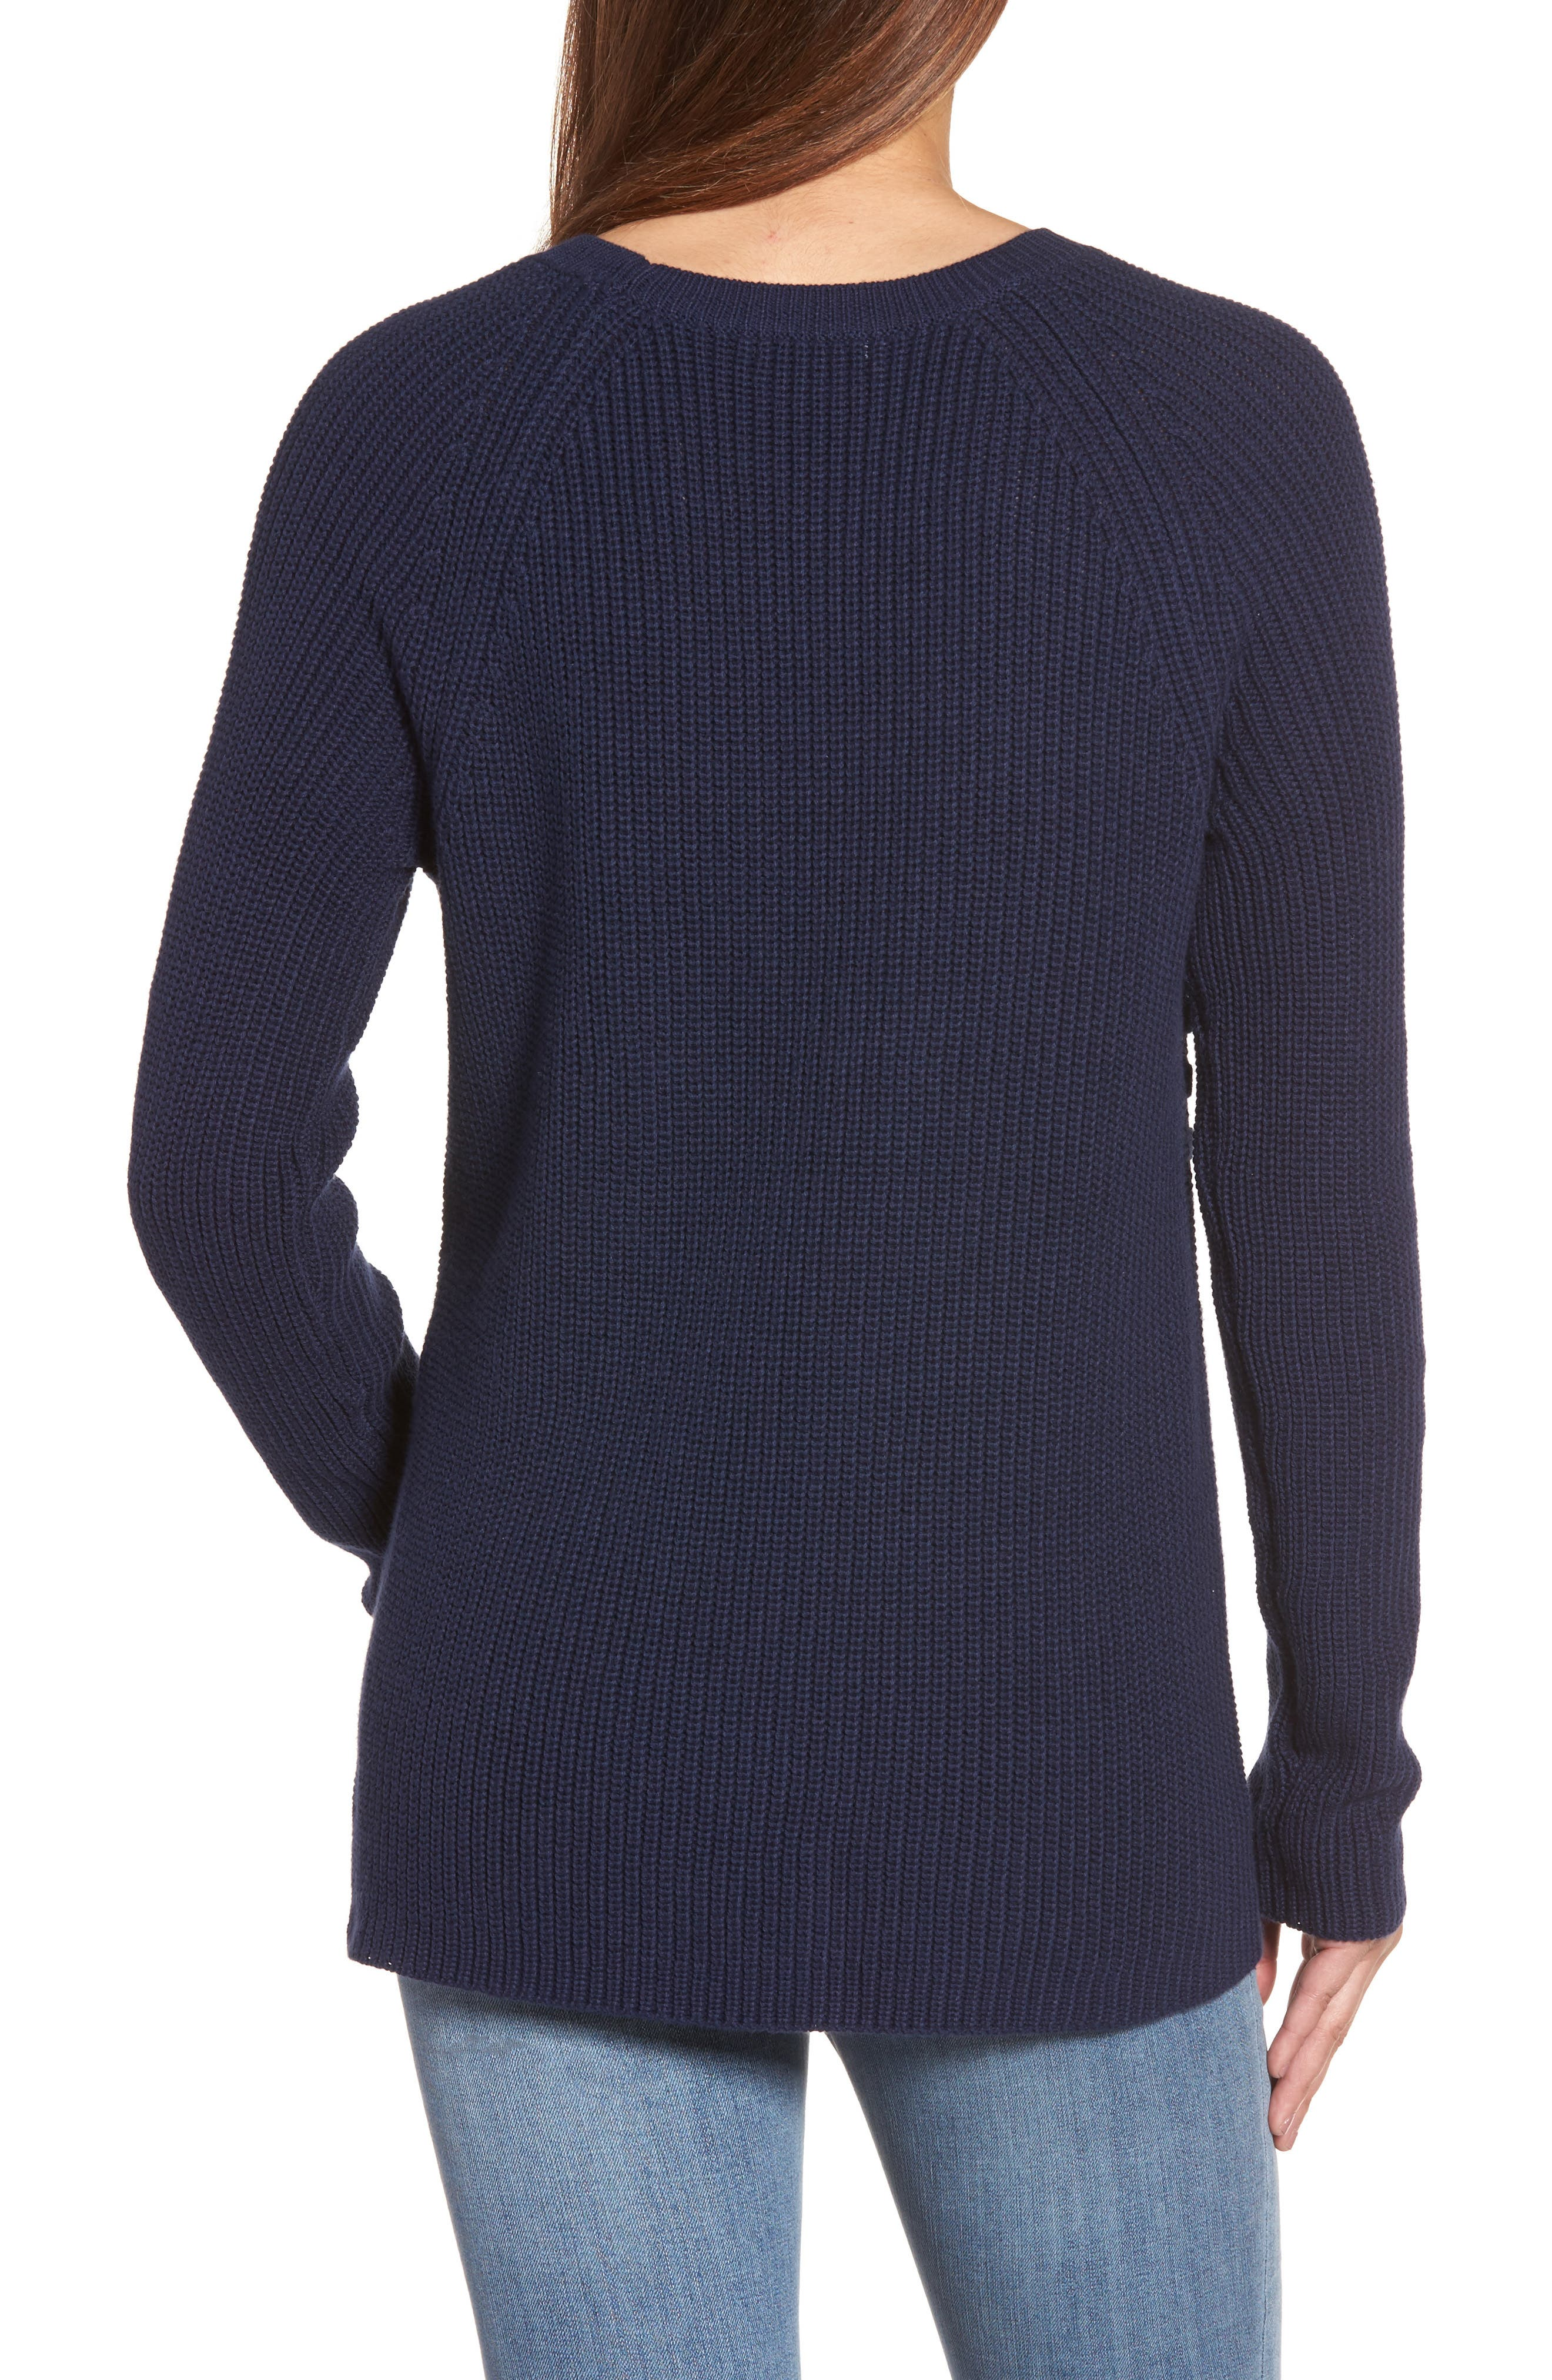 Lace-Up Sweater,                             Alternate thumbnail 2, color,                             410